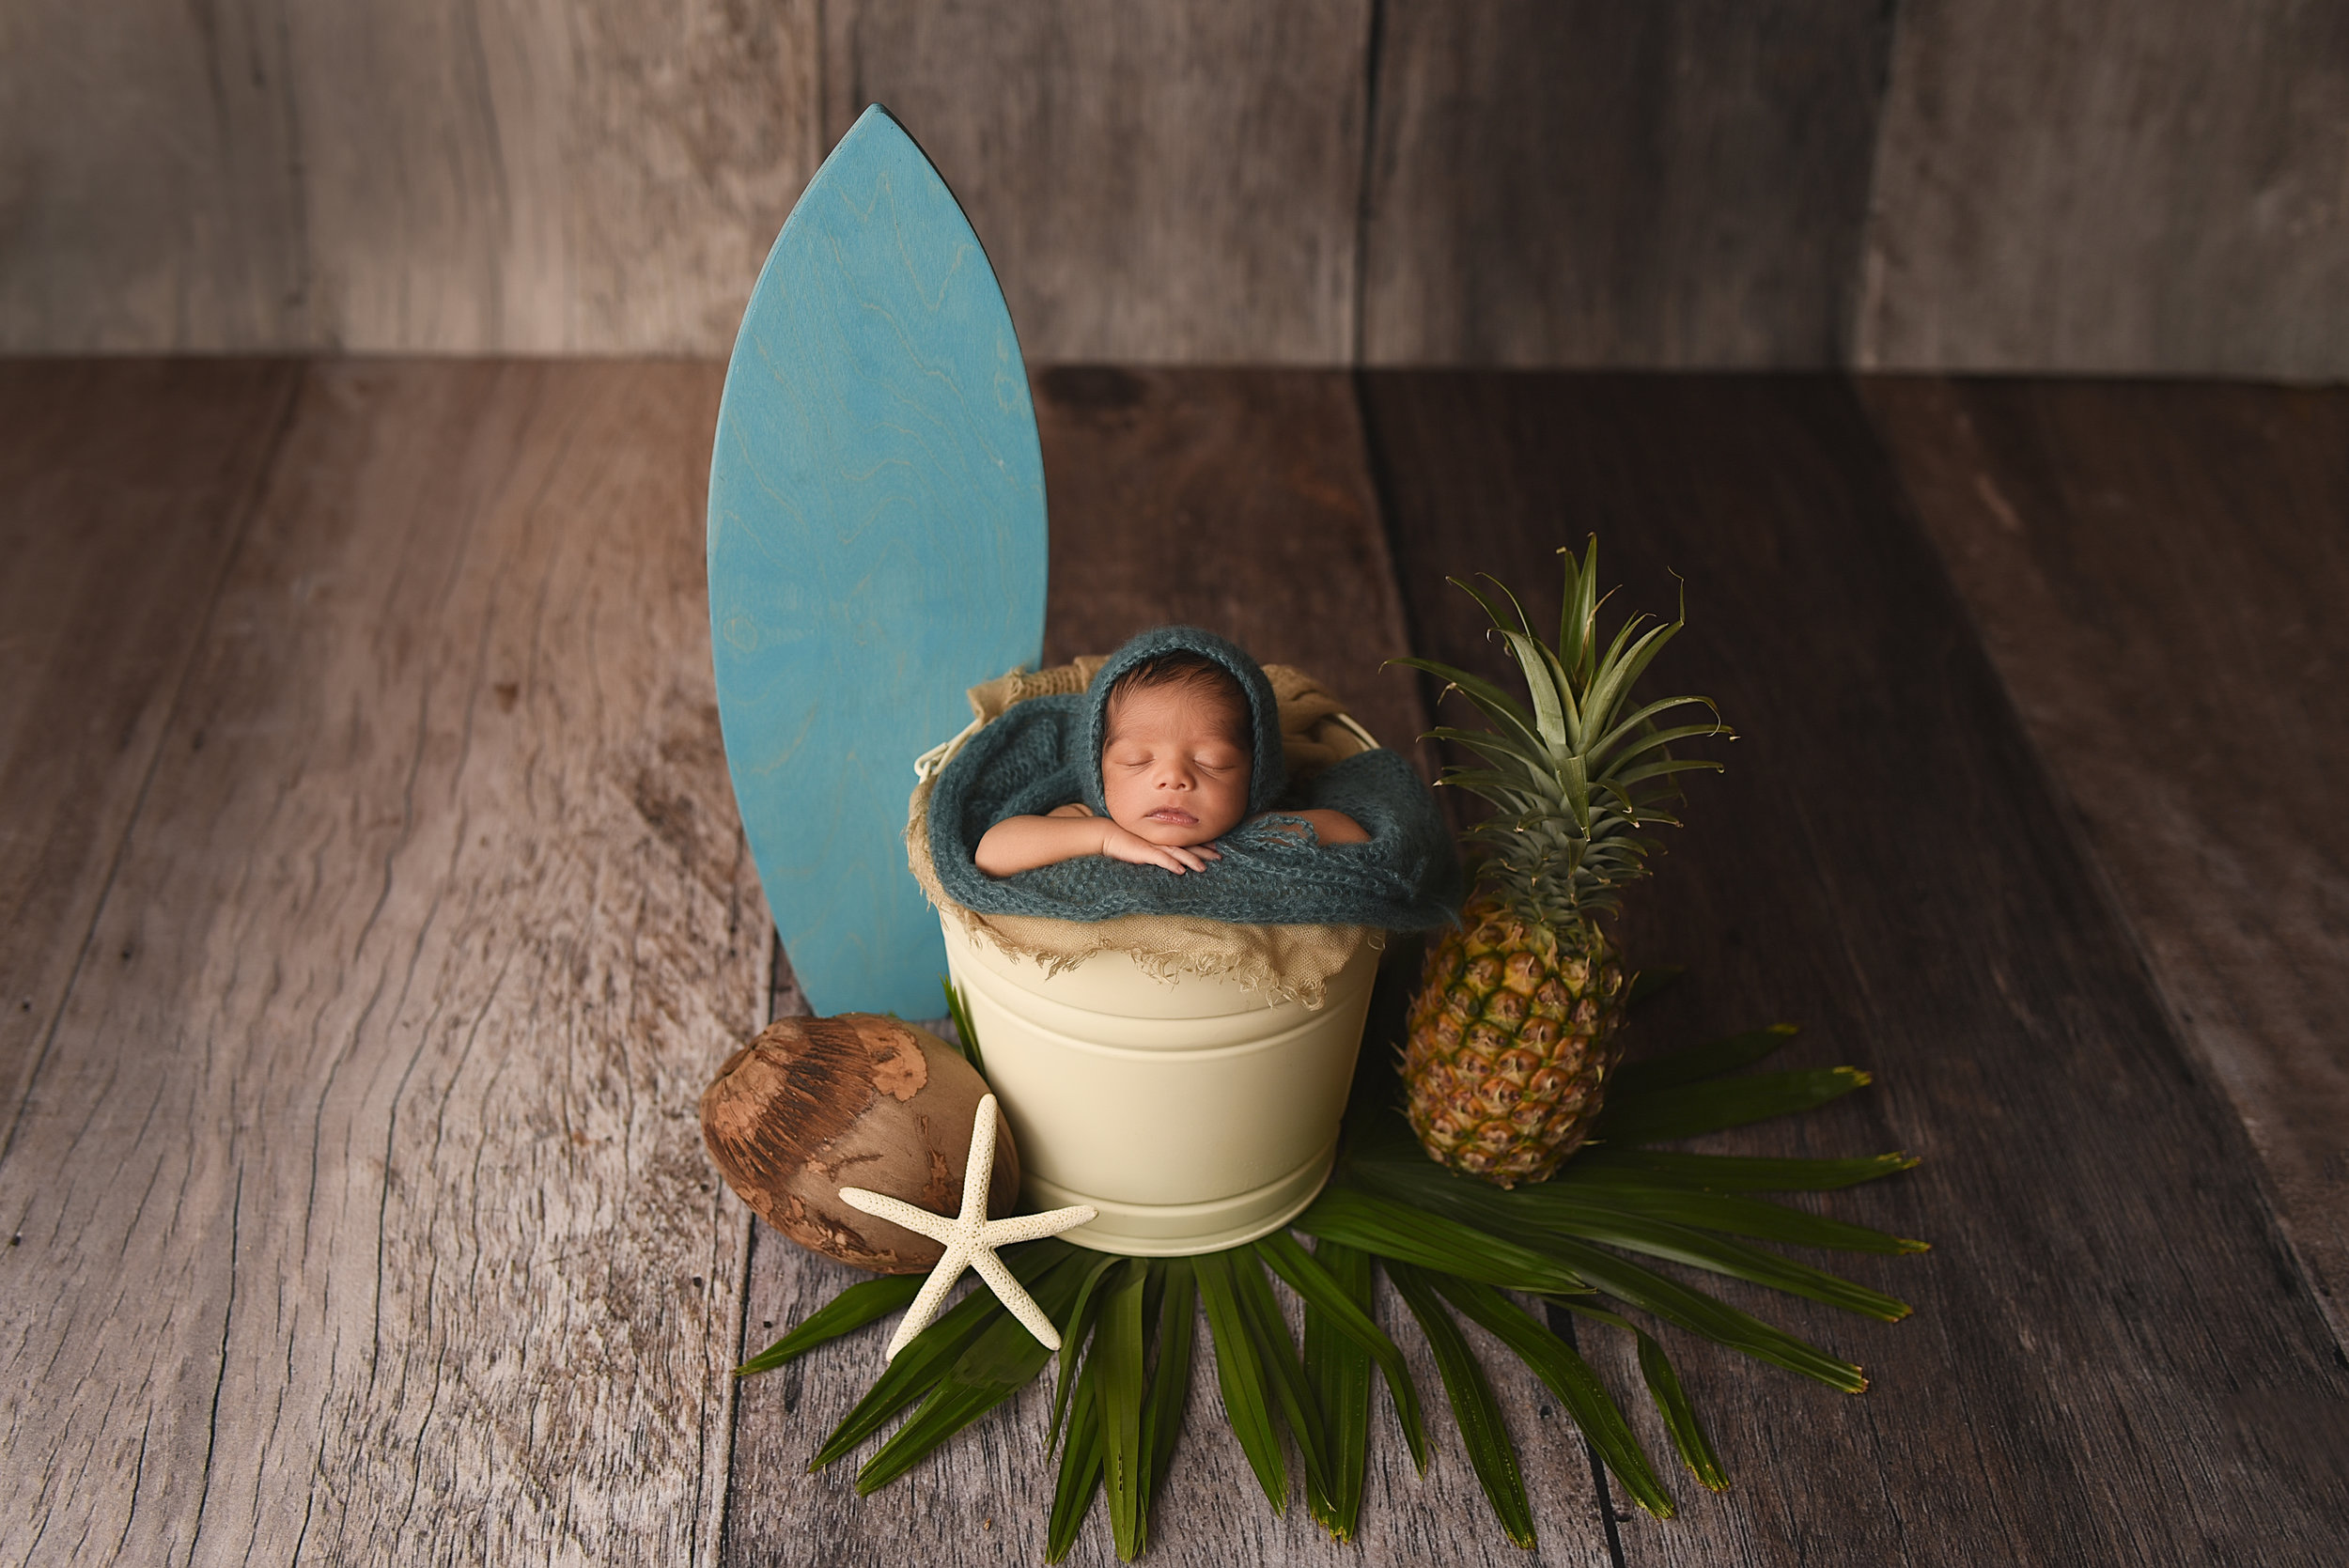 Sarah_Lynn_Photography_Oahu_Newborn_Photographer_Baby_Surfer